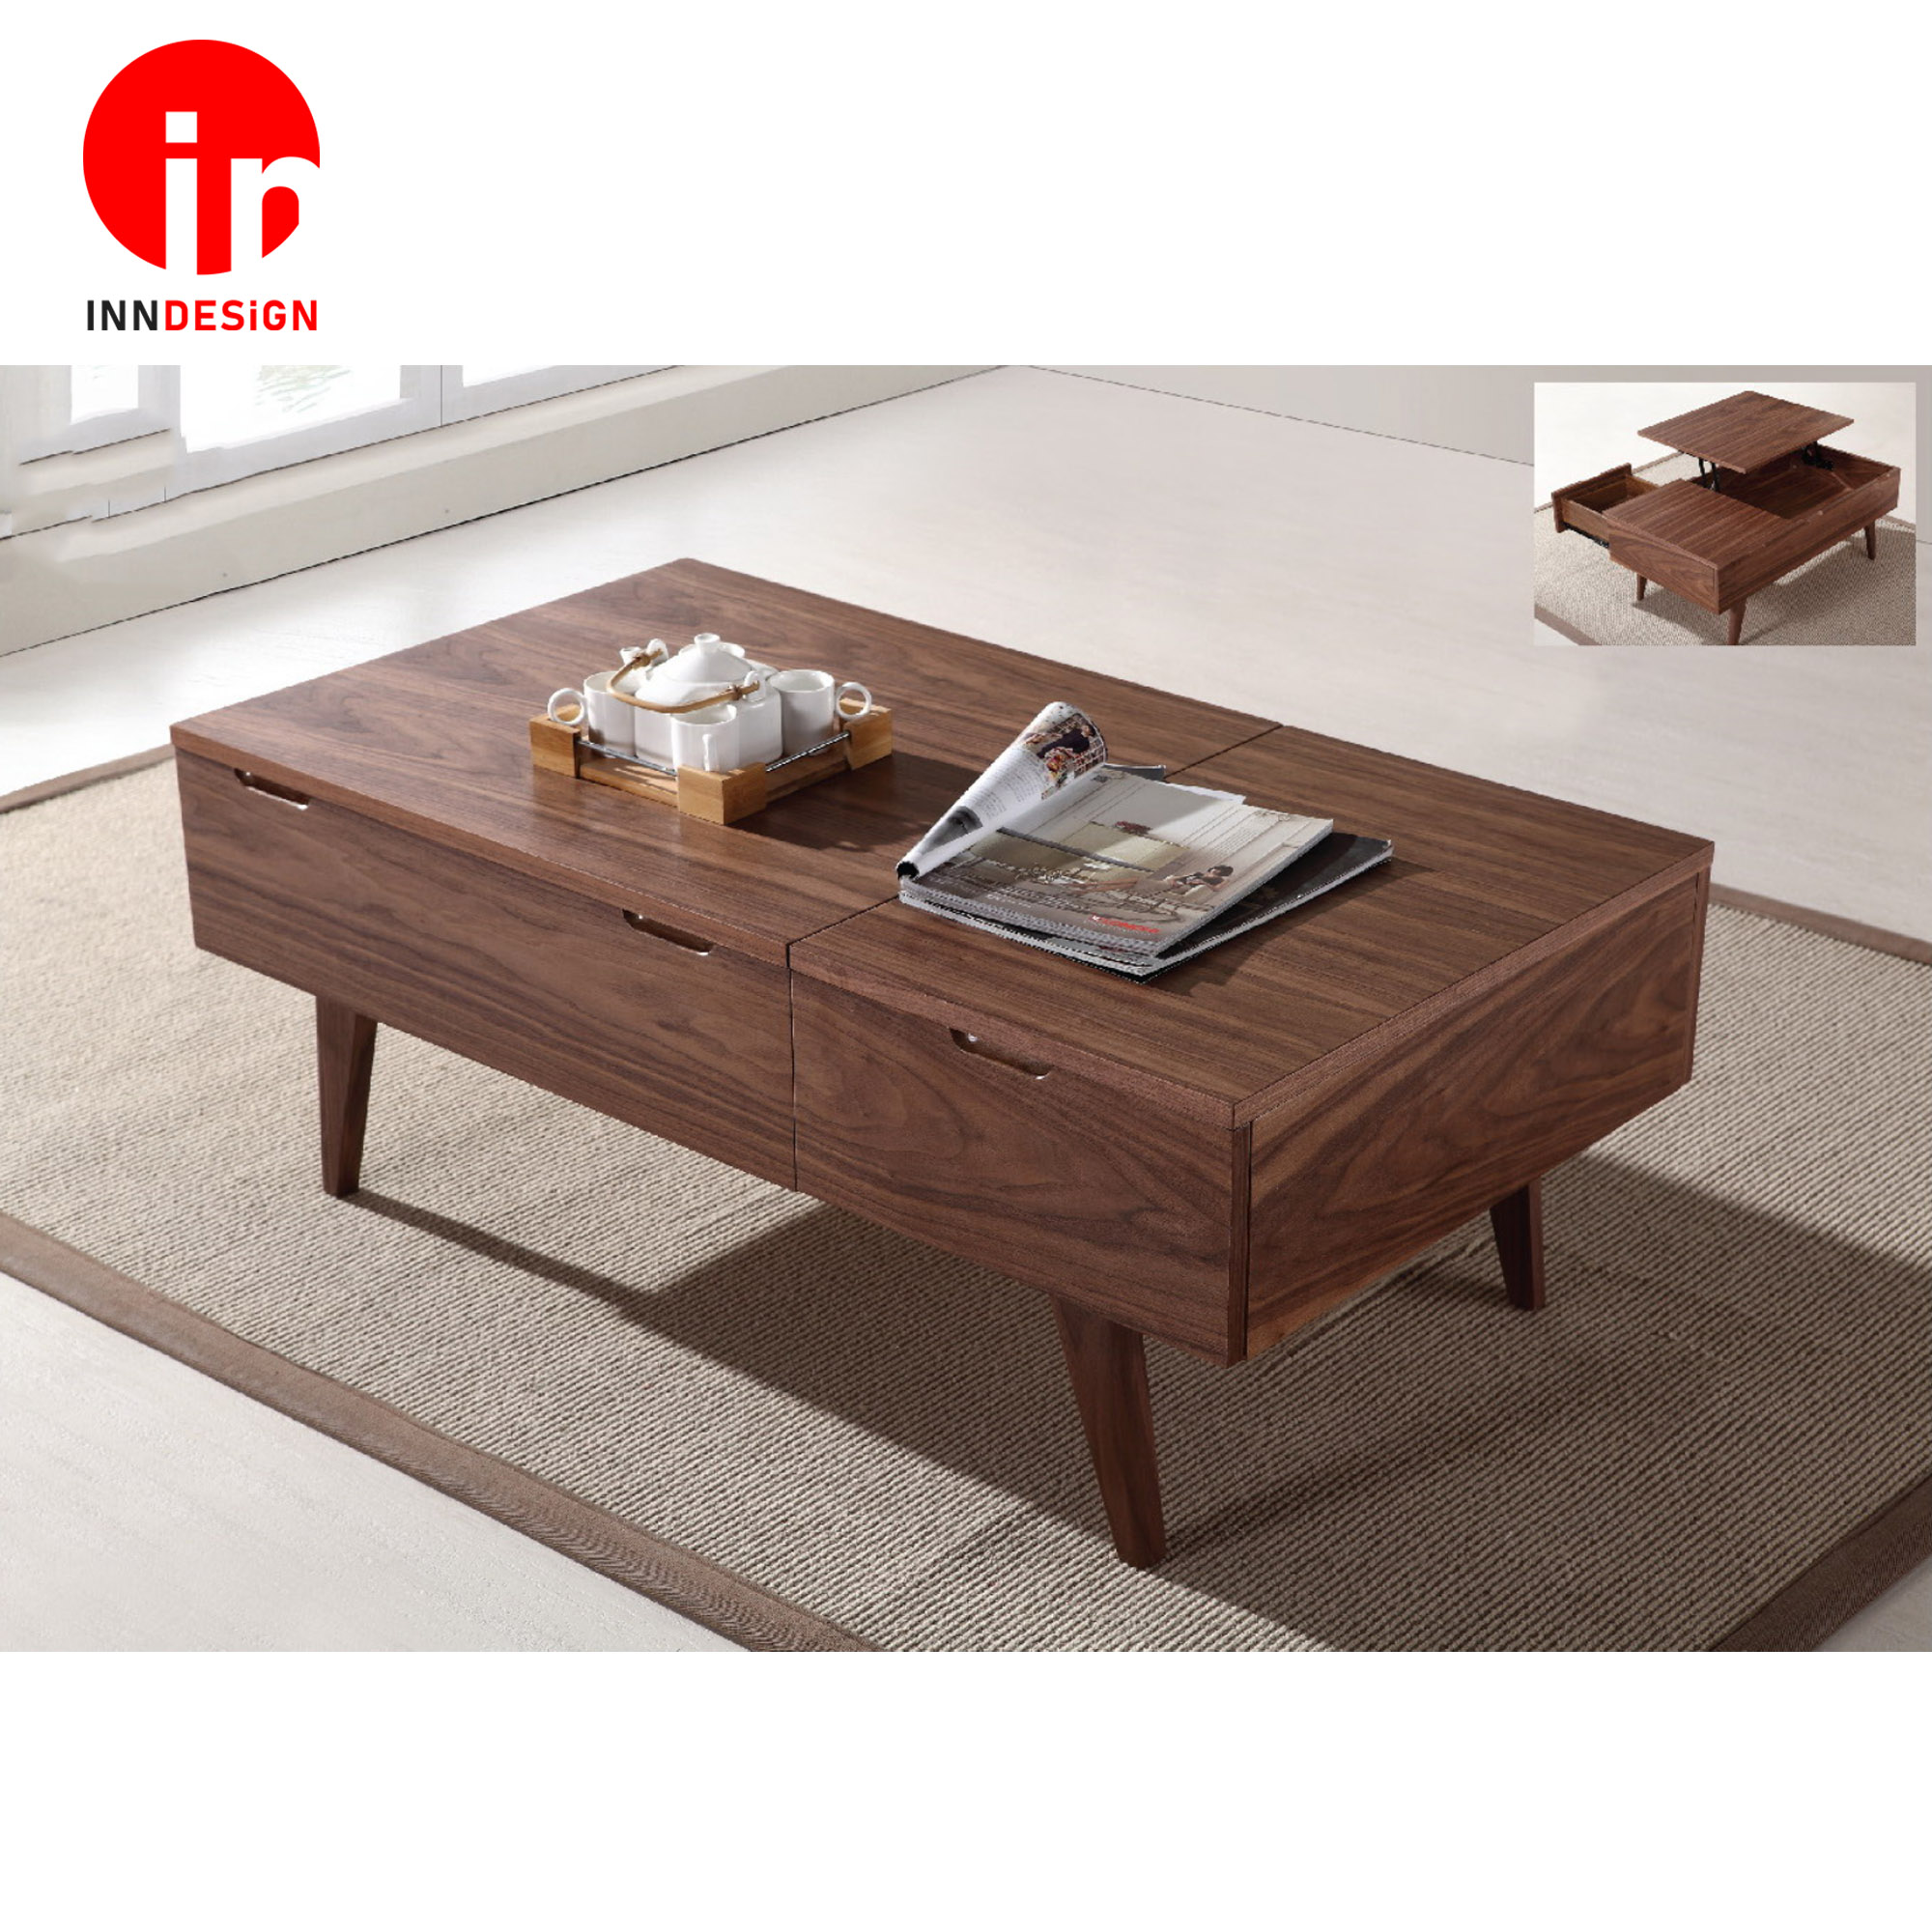 Lovene Lift-Up Solid Wood Coffee Table